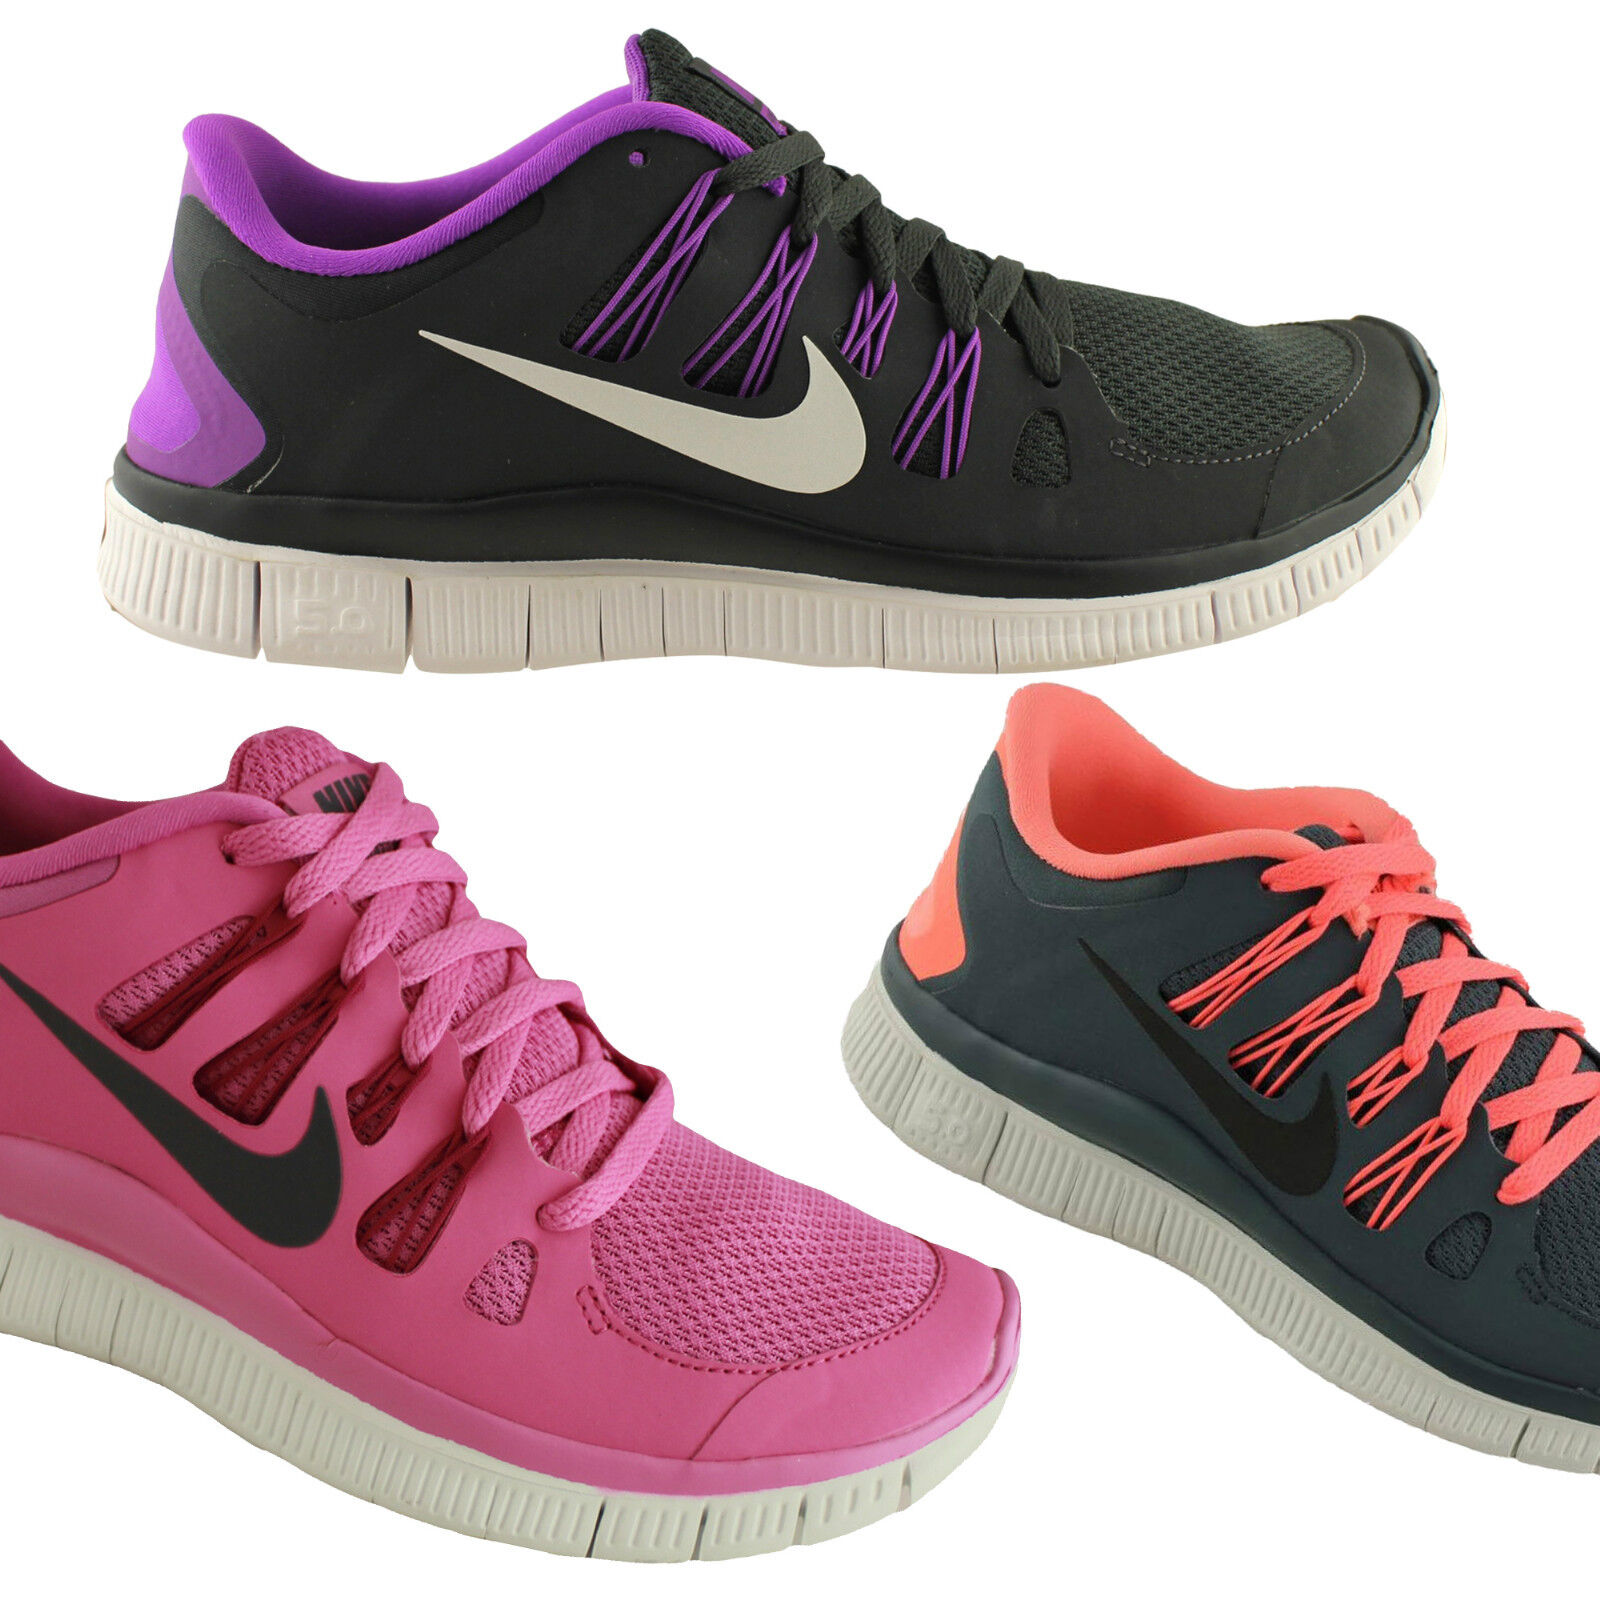 NIKE FREE RUN 5.0+ WOMENS/LADIES SHOES/SNEAKERS/RUNNING SHOES ON EBAY